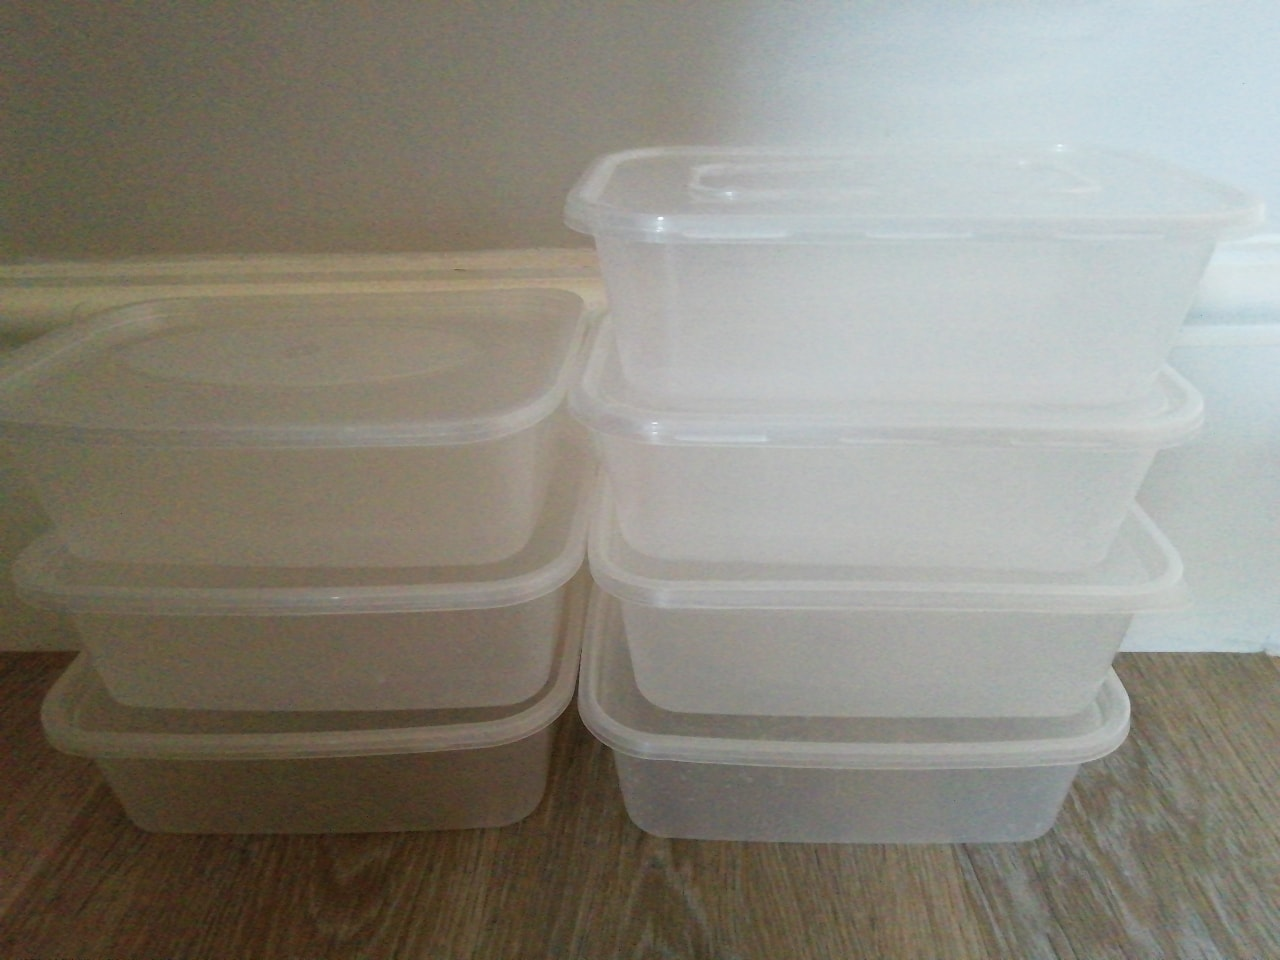 7 reusable takeaway plastic containers with lids.